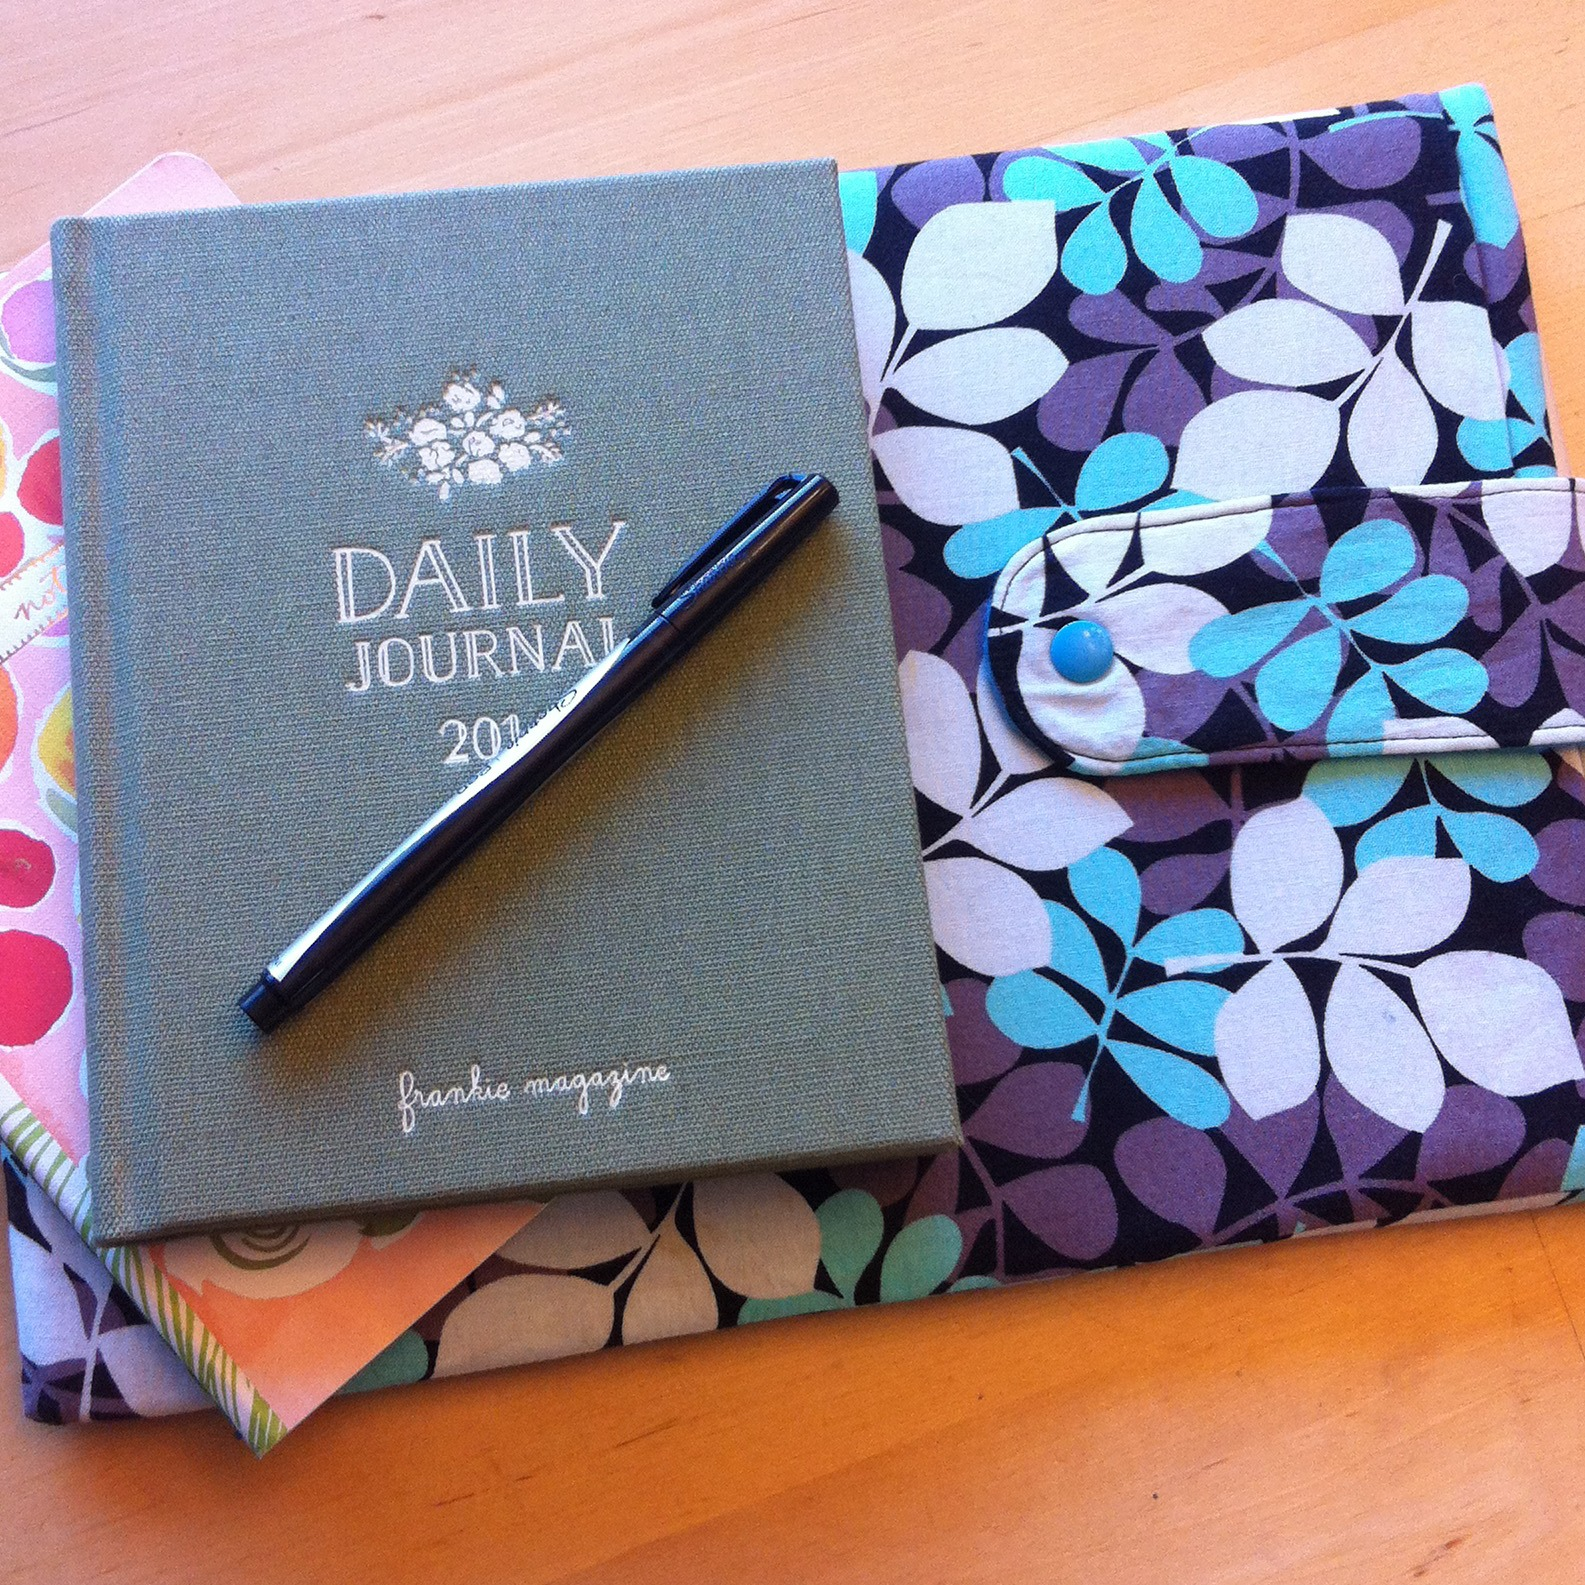 1 hour diy laptop sleeve sewing tutorial for any size laptop this 60 minute laptop sleeve sewing tutorial is customizable for any size of laptop from a jeuxipadfo Choice Image